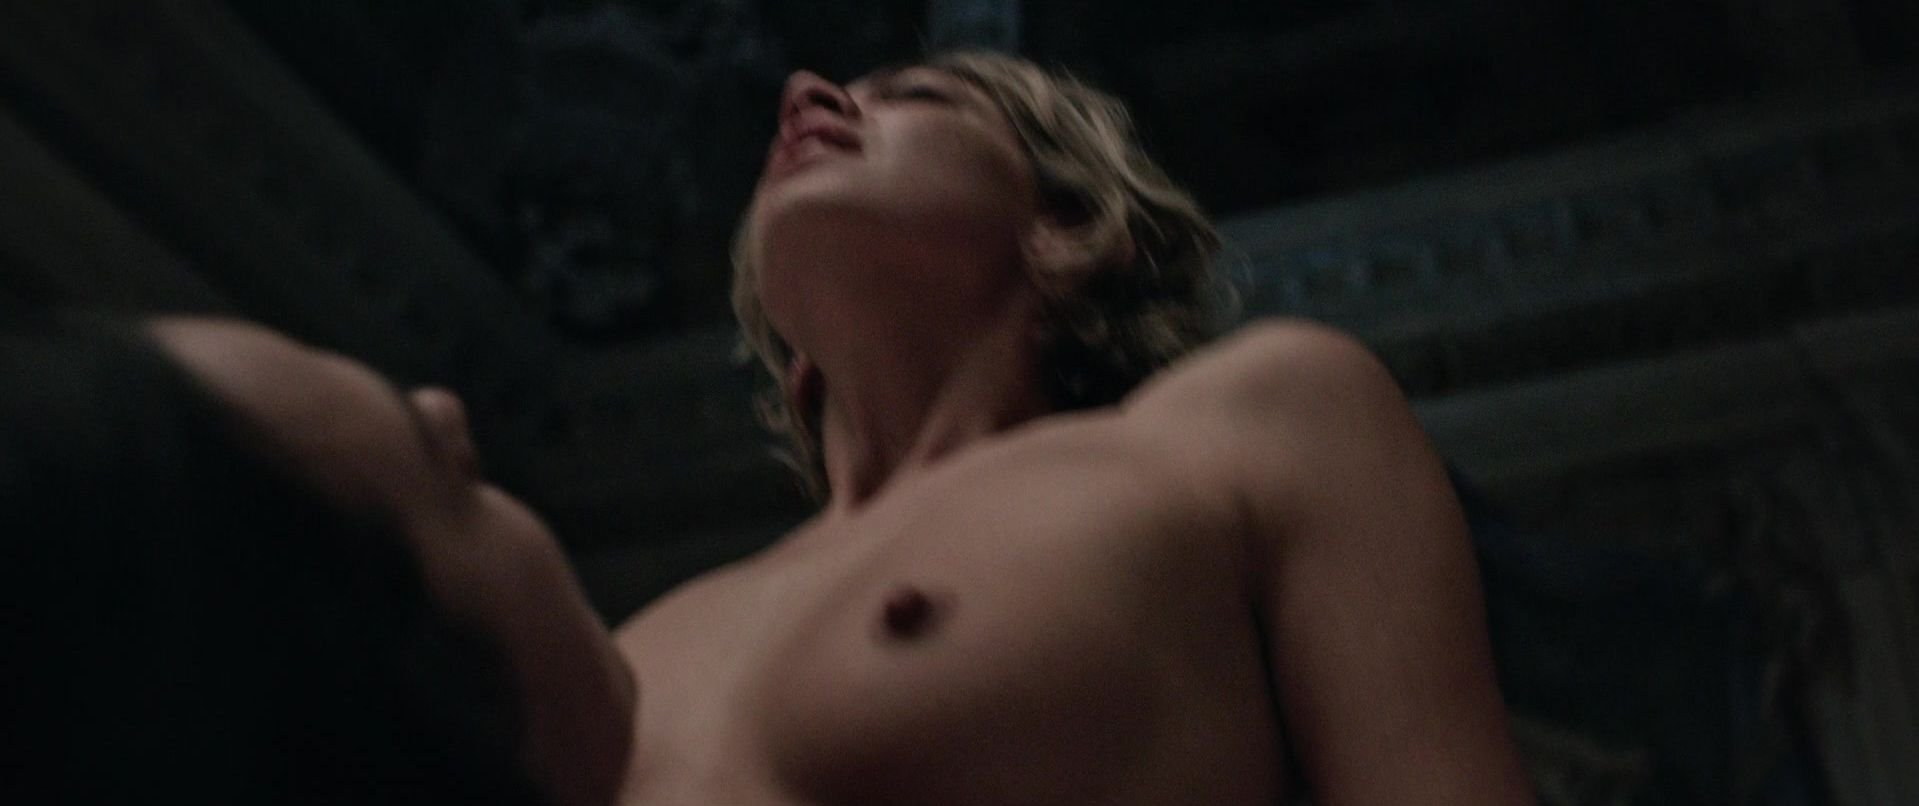 Analeigh tipton nipples